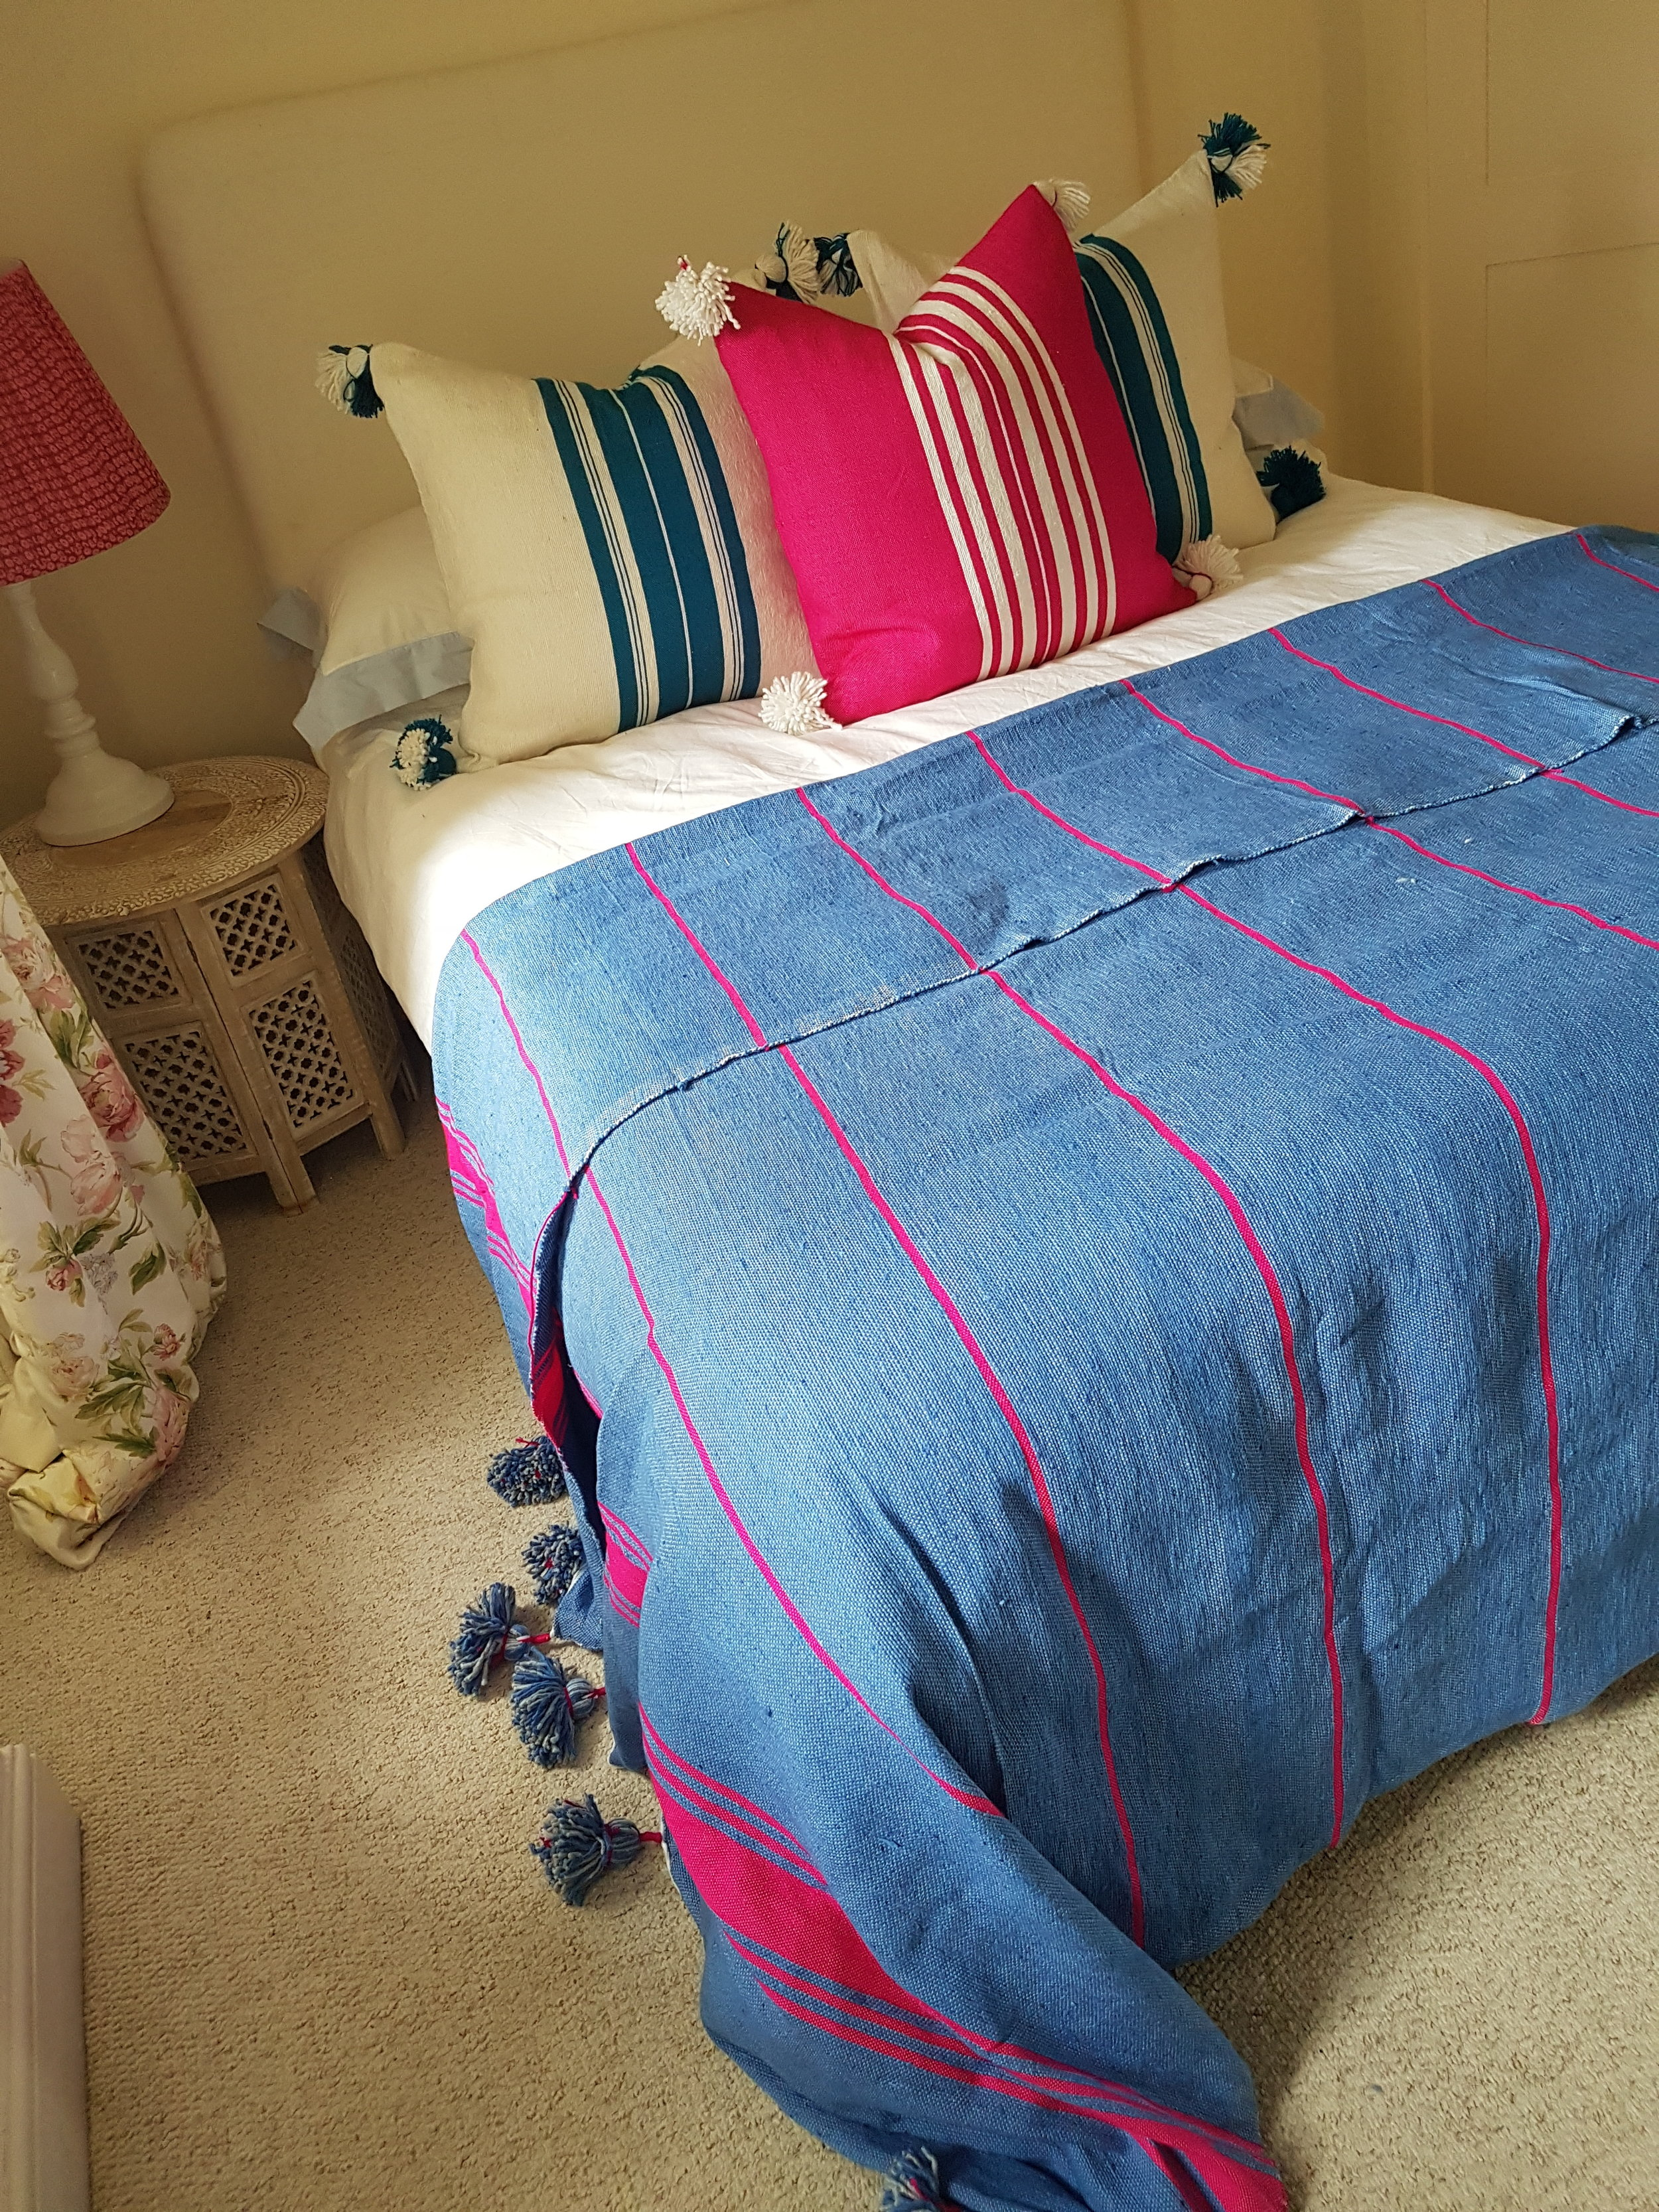 Shop the look, click  here for pink cushion  and  here for white & blue cushion .